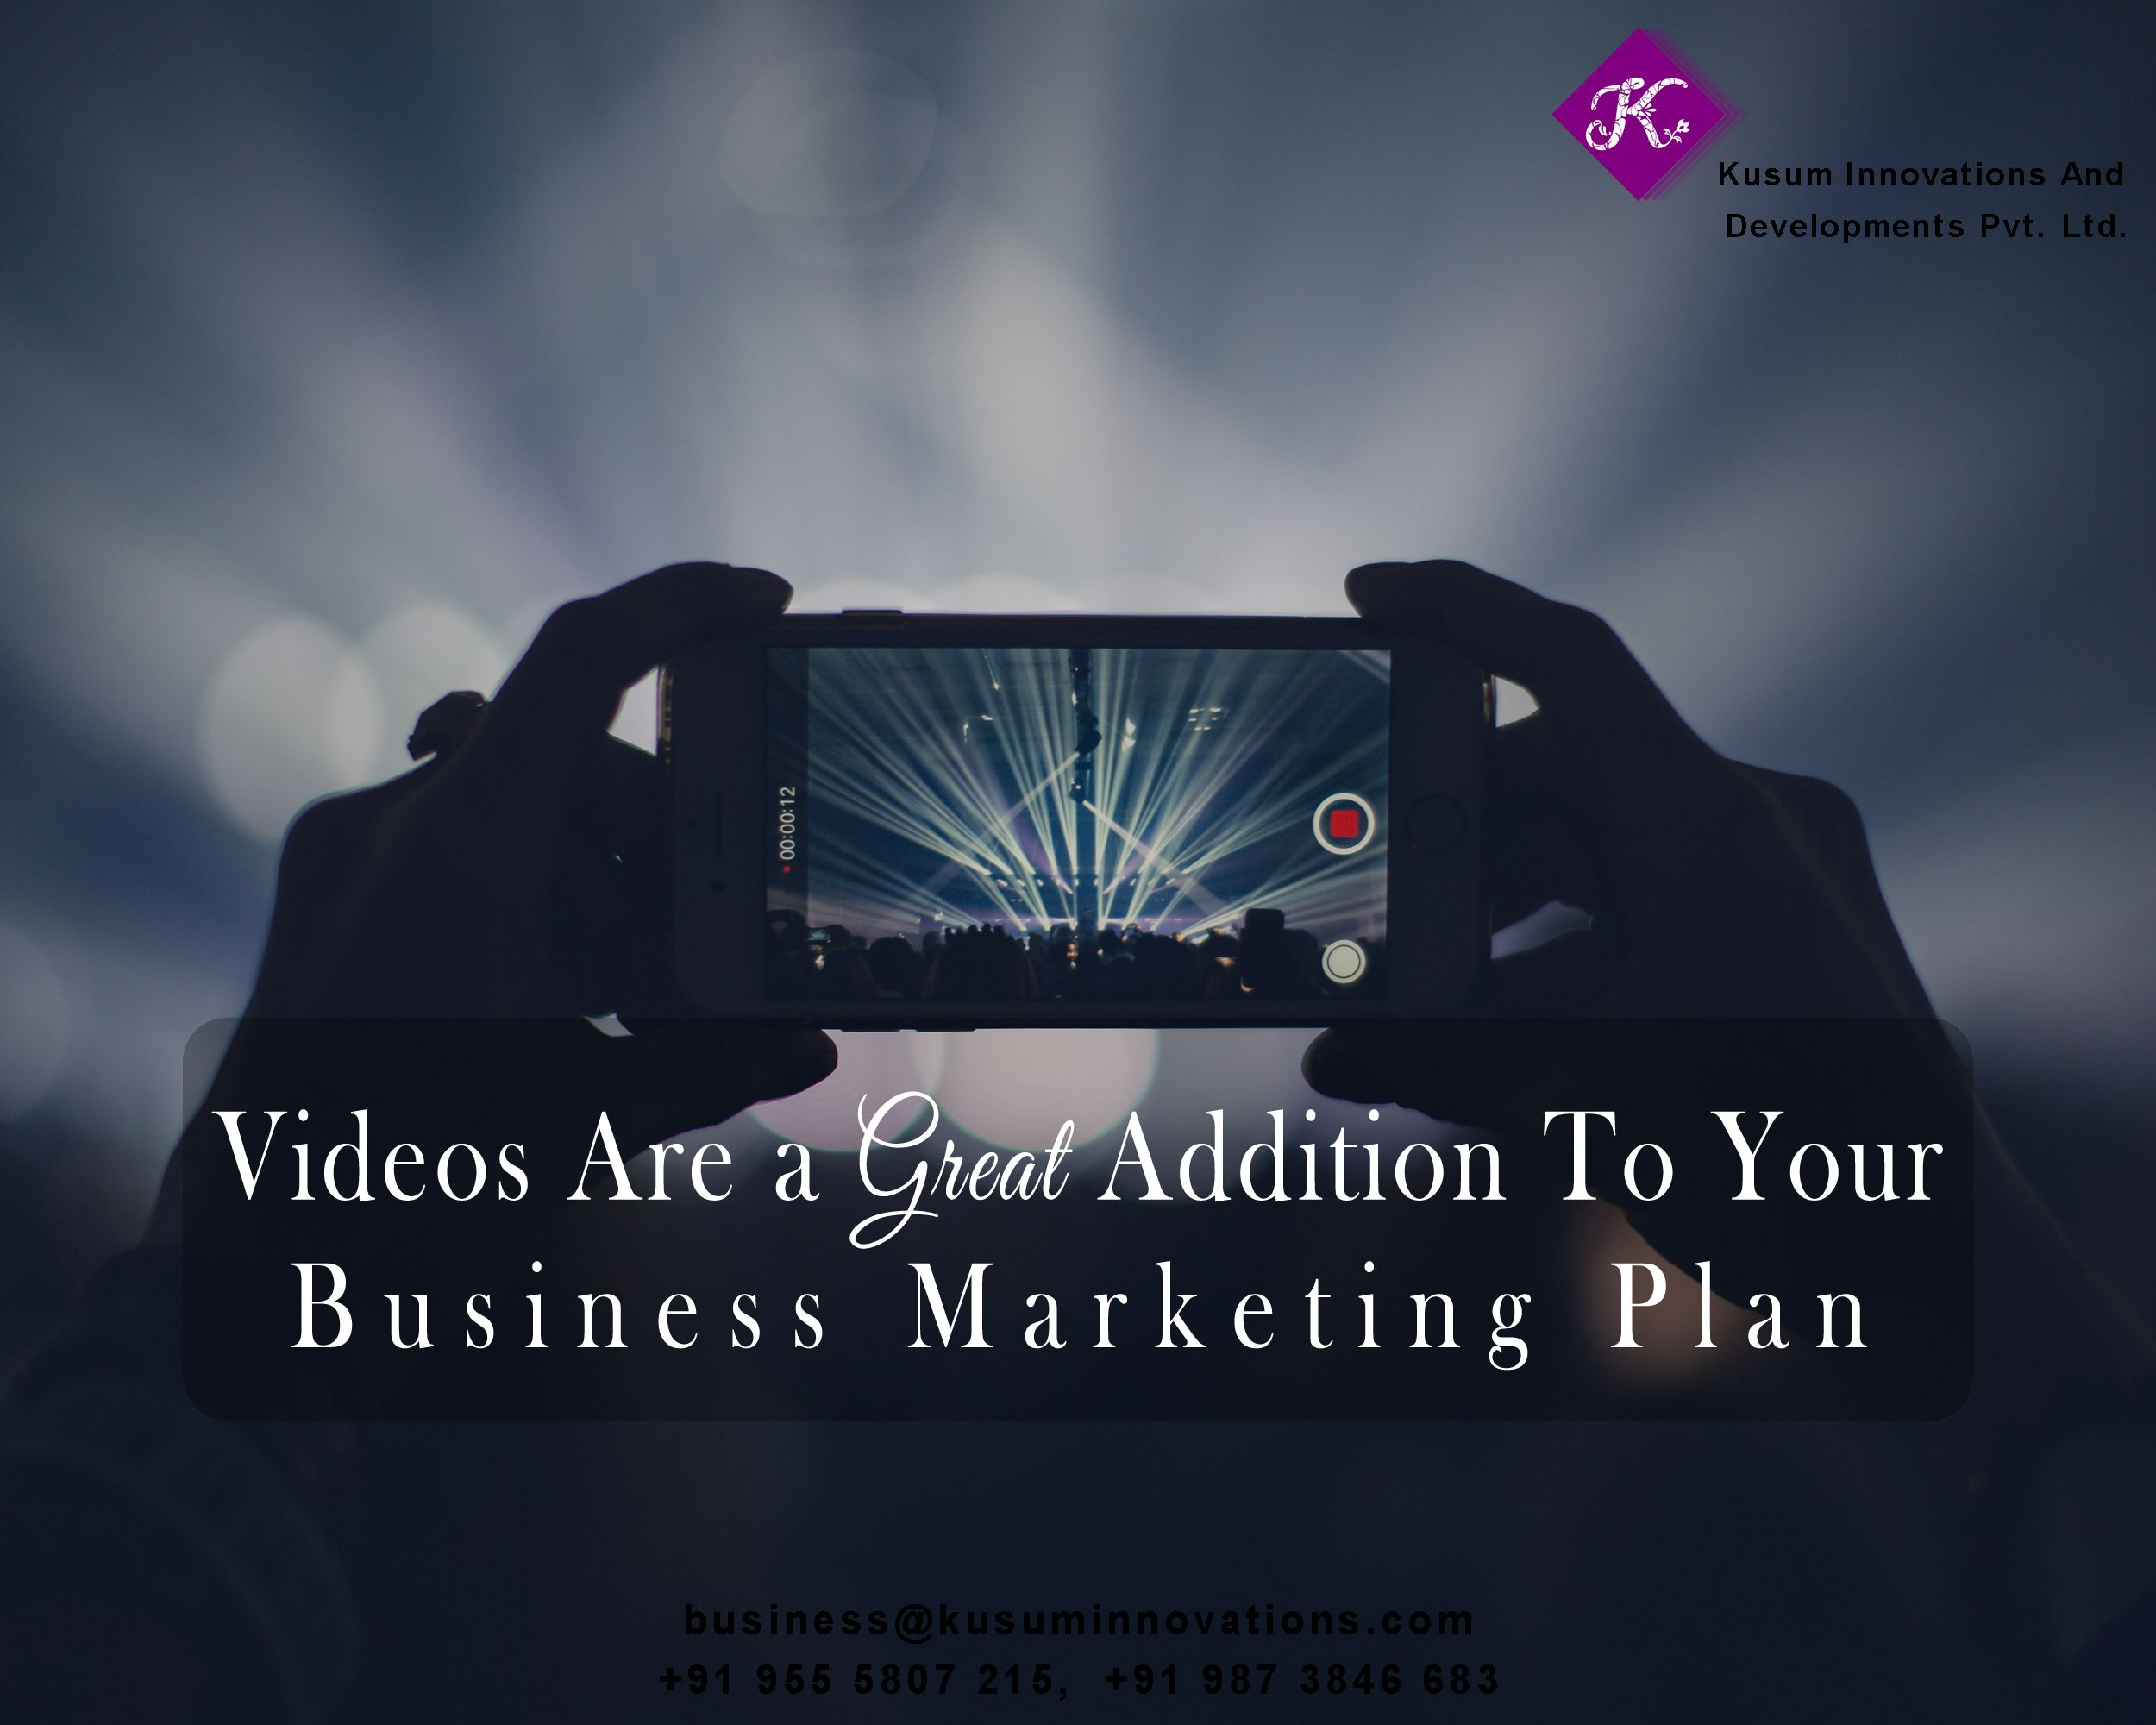 Video S Are A Great Addition To Your Business Marketing Plan Business Marketing Plan Video Marketing Video Ads